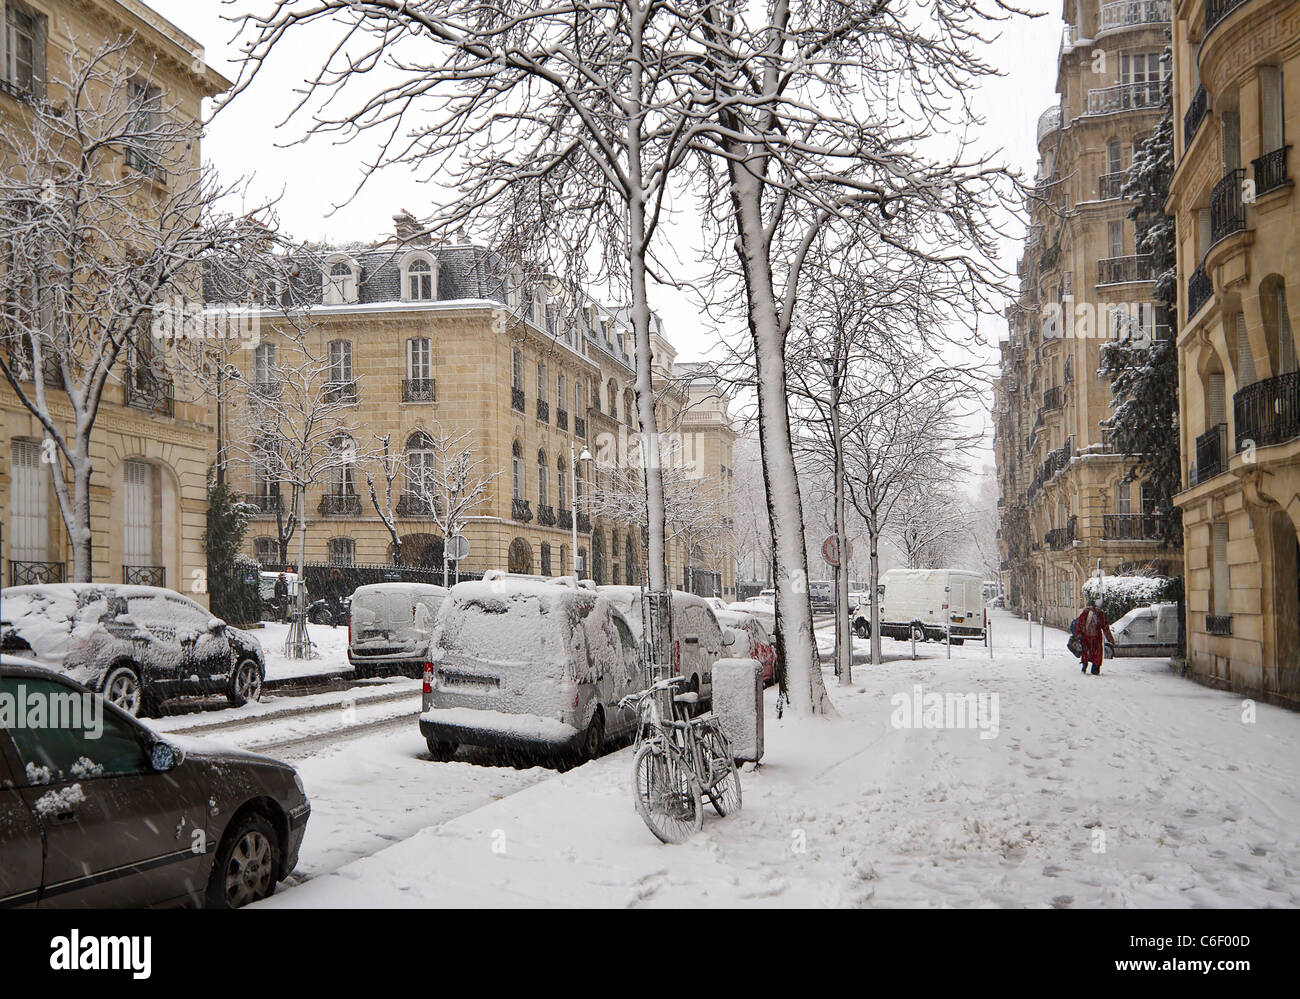 An early winter snowstorm covers trees and pavements in Paris, France. - Stock Image